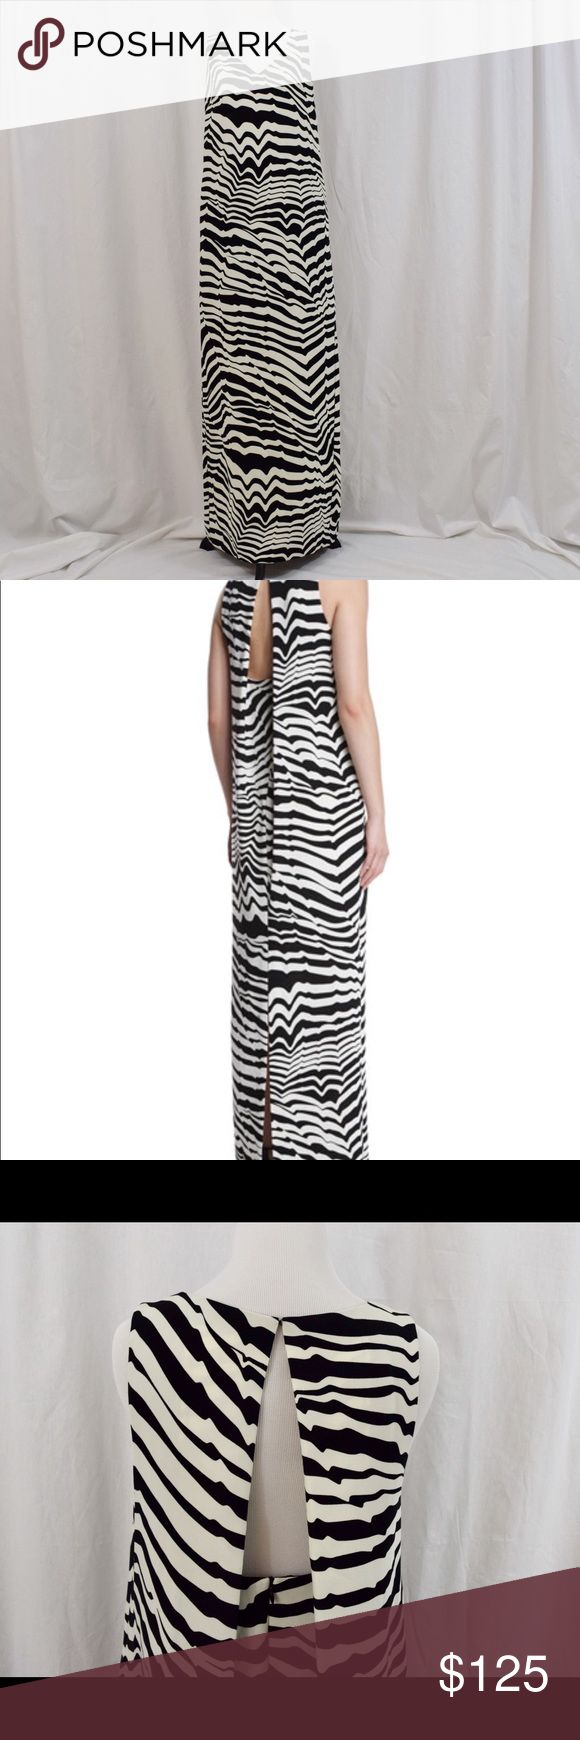 "Trina Turk Sleeveless Animal-Print Maxi Dress Black and cream geometric animal-print maxi dress. V neckline, draped keyhole back. 2 hidden side pockets. Zipper closure in back. Approximately from top of back to hem is 58"". Trina Turk Dresses Maxi"